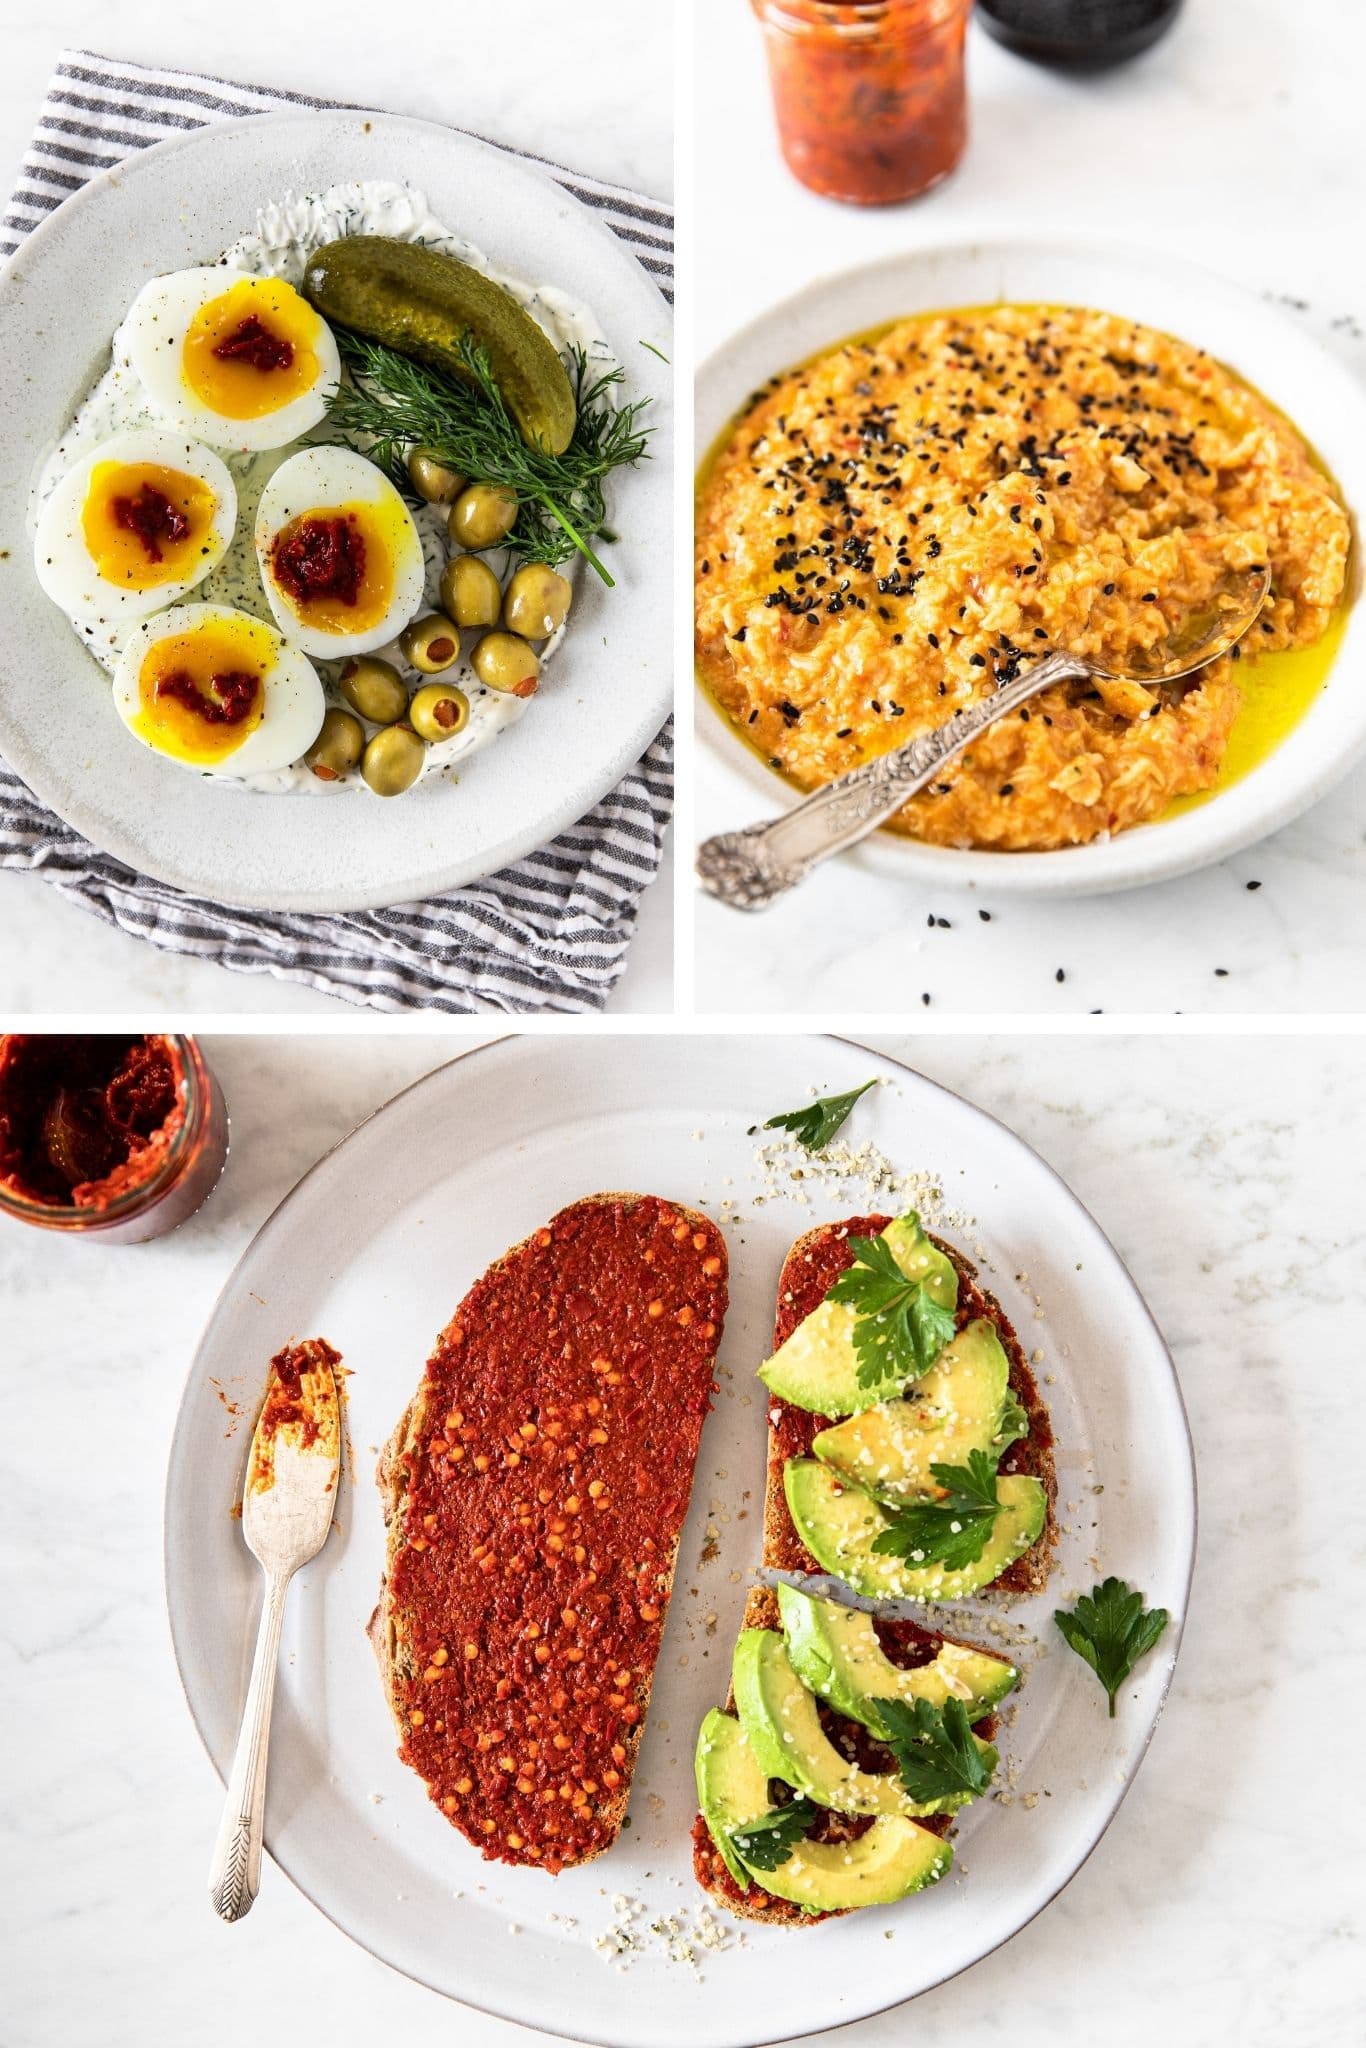 Three photos showing three different dishes, using Tunisian chili paste Harissa: with eggs, olives, pickle and yogurt; stirred into savory oatmeal; spread on a toast and topped with avocado | verygoodcook.com